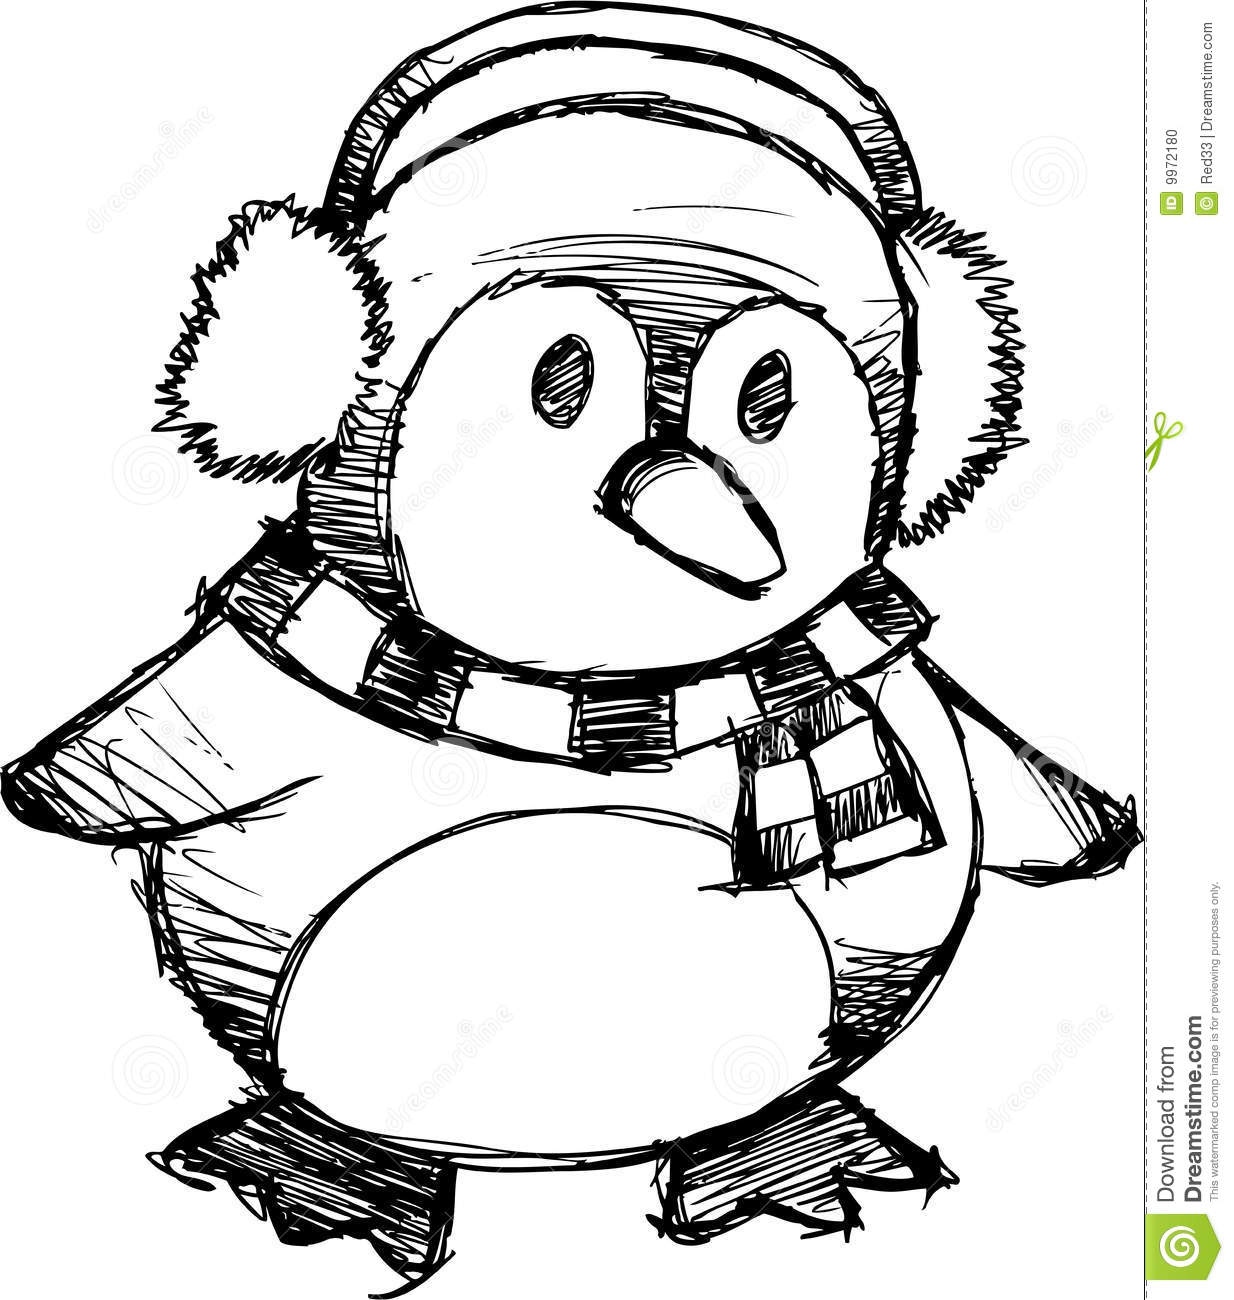 Sketchy Christmas Penguin Vector Stock Photo - Image: 9972180